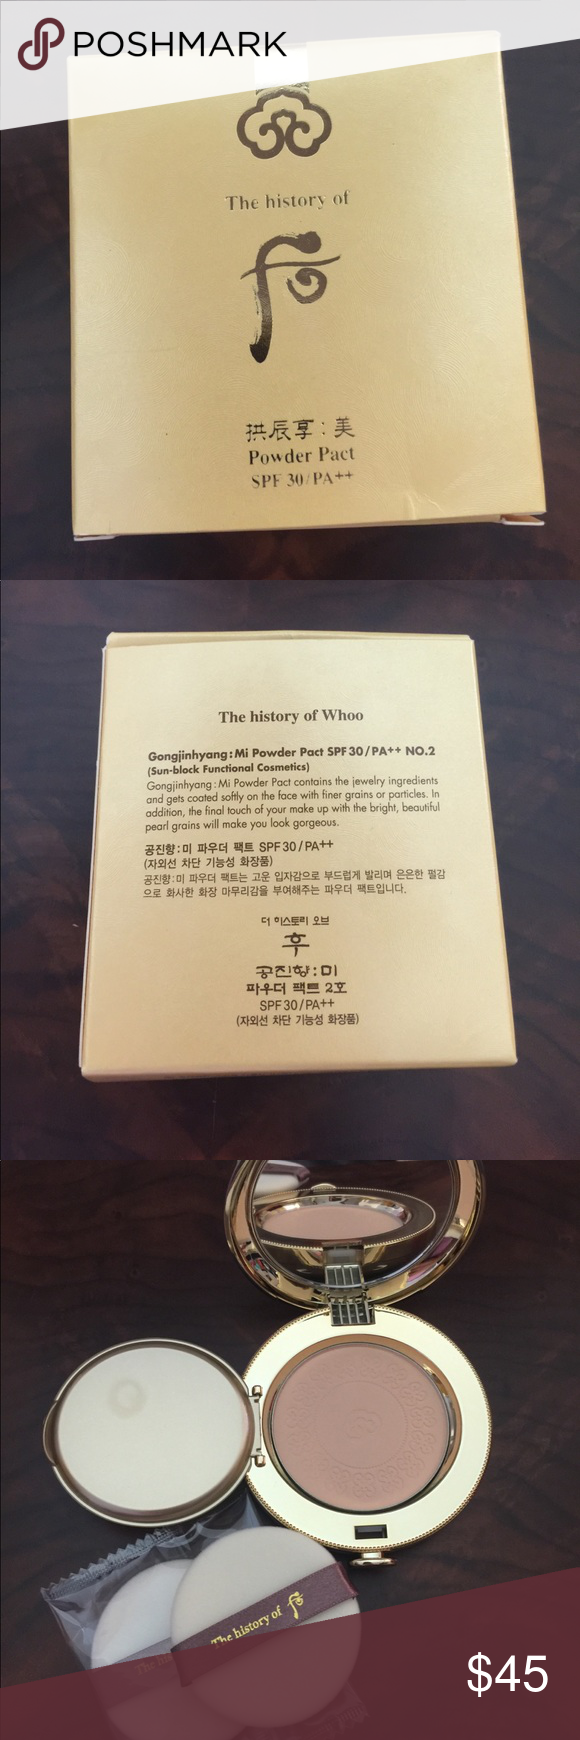 The History of Whoo Powder Pact Brand New Famous Korean